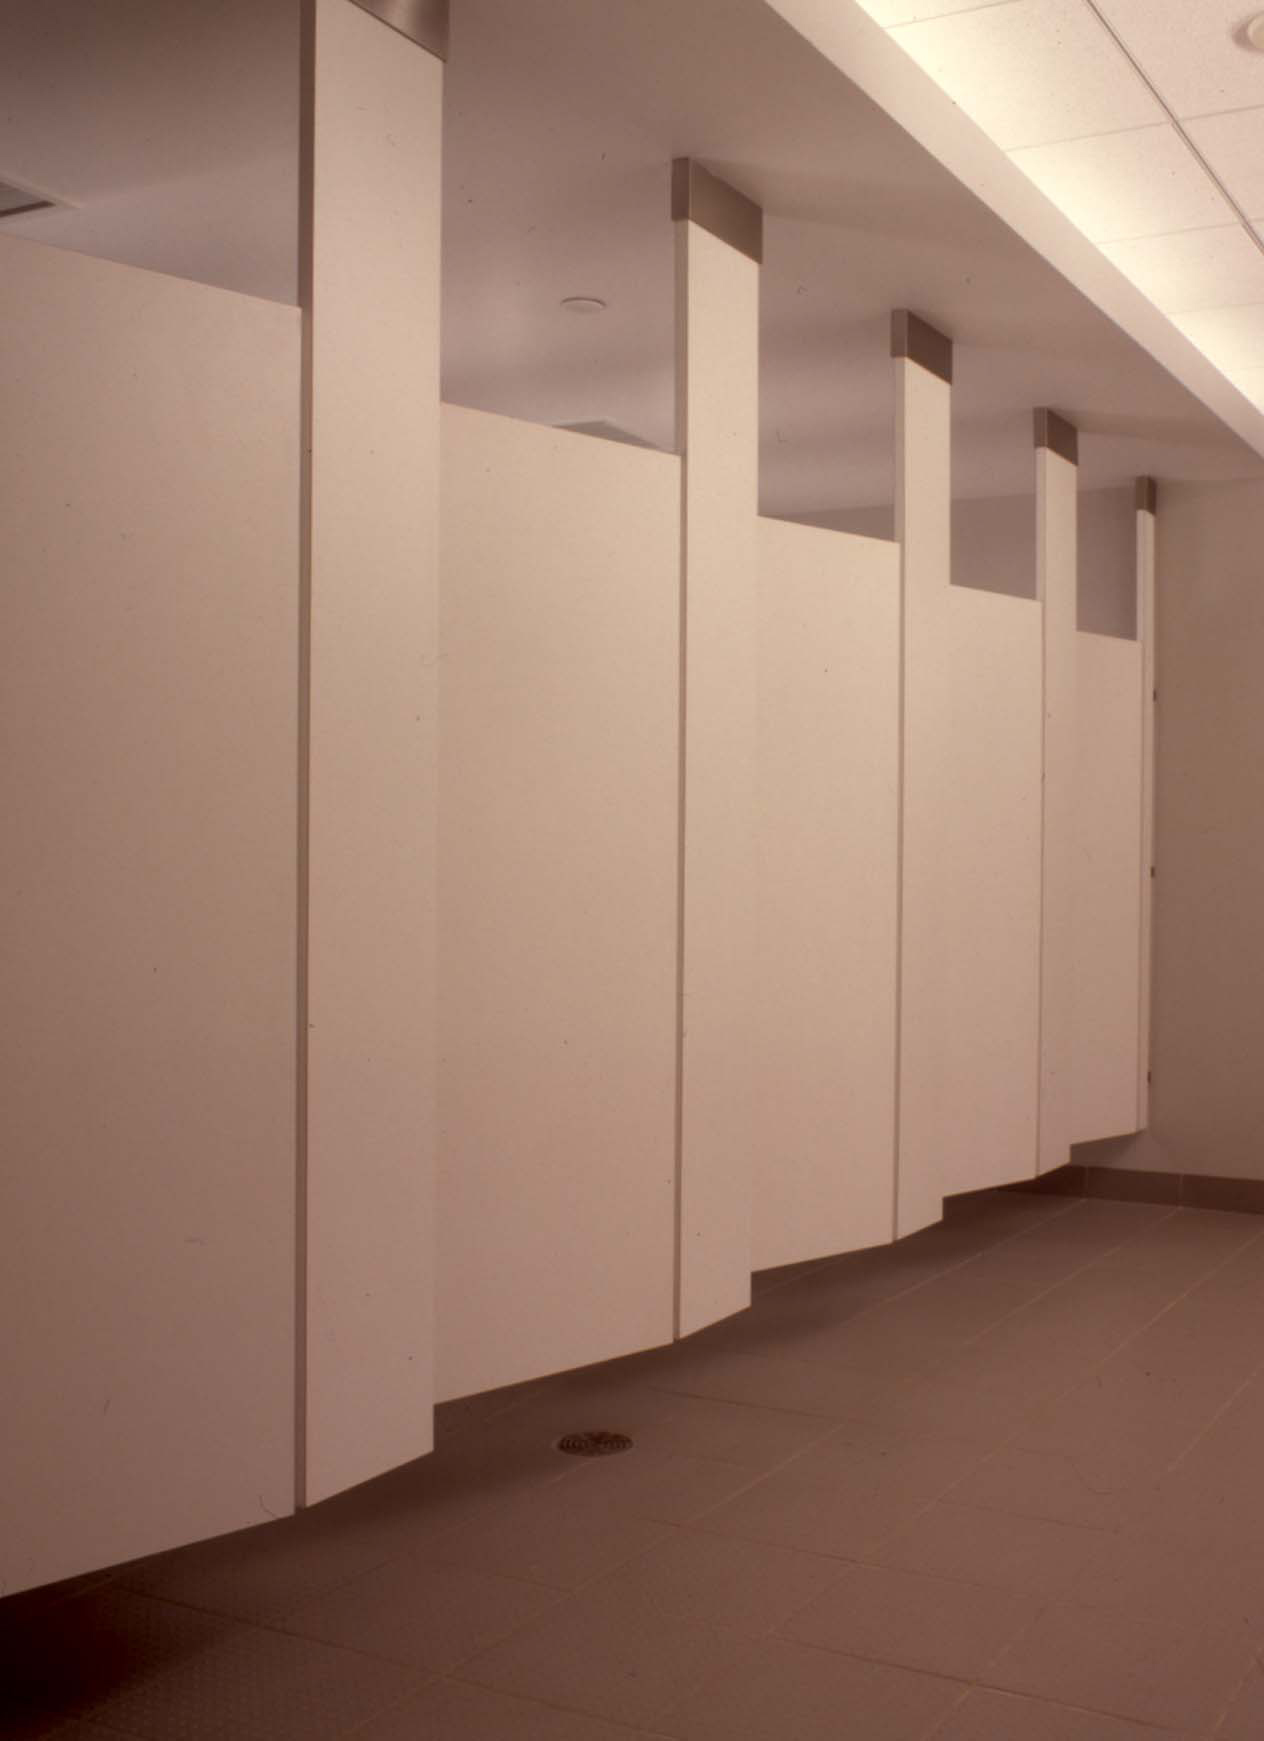 Bobrick Bath Partitions Scrc Reinforced Composite Toilet Partitions Bobrick Toilet Partitions